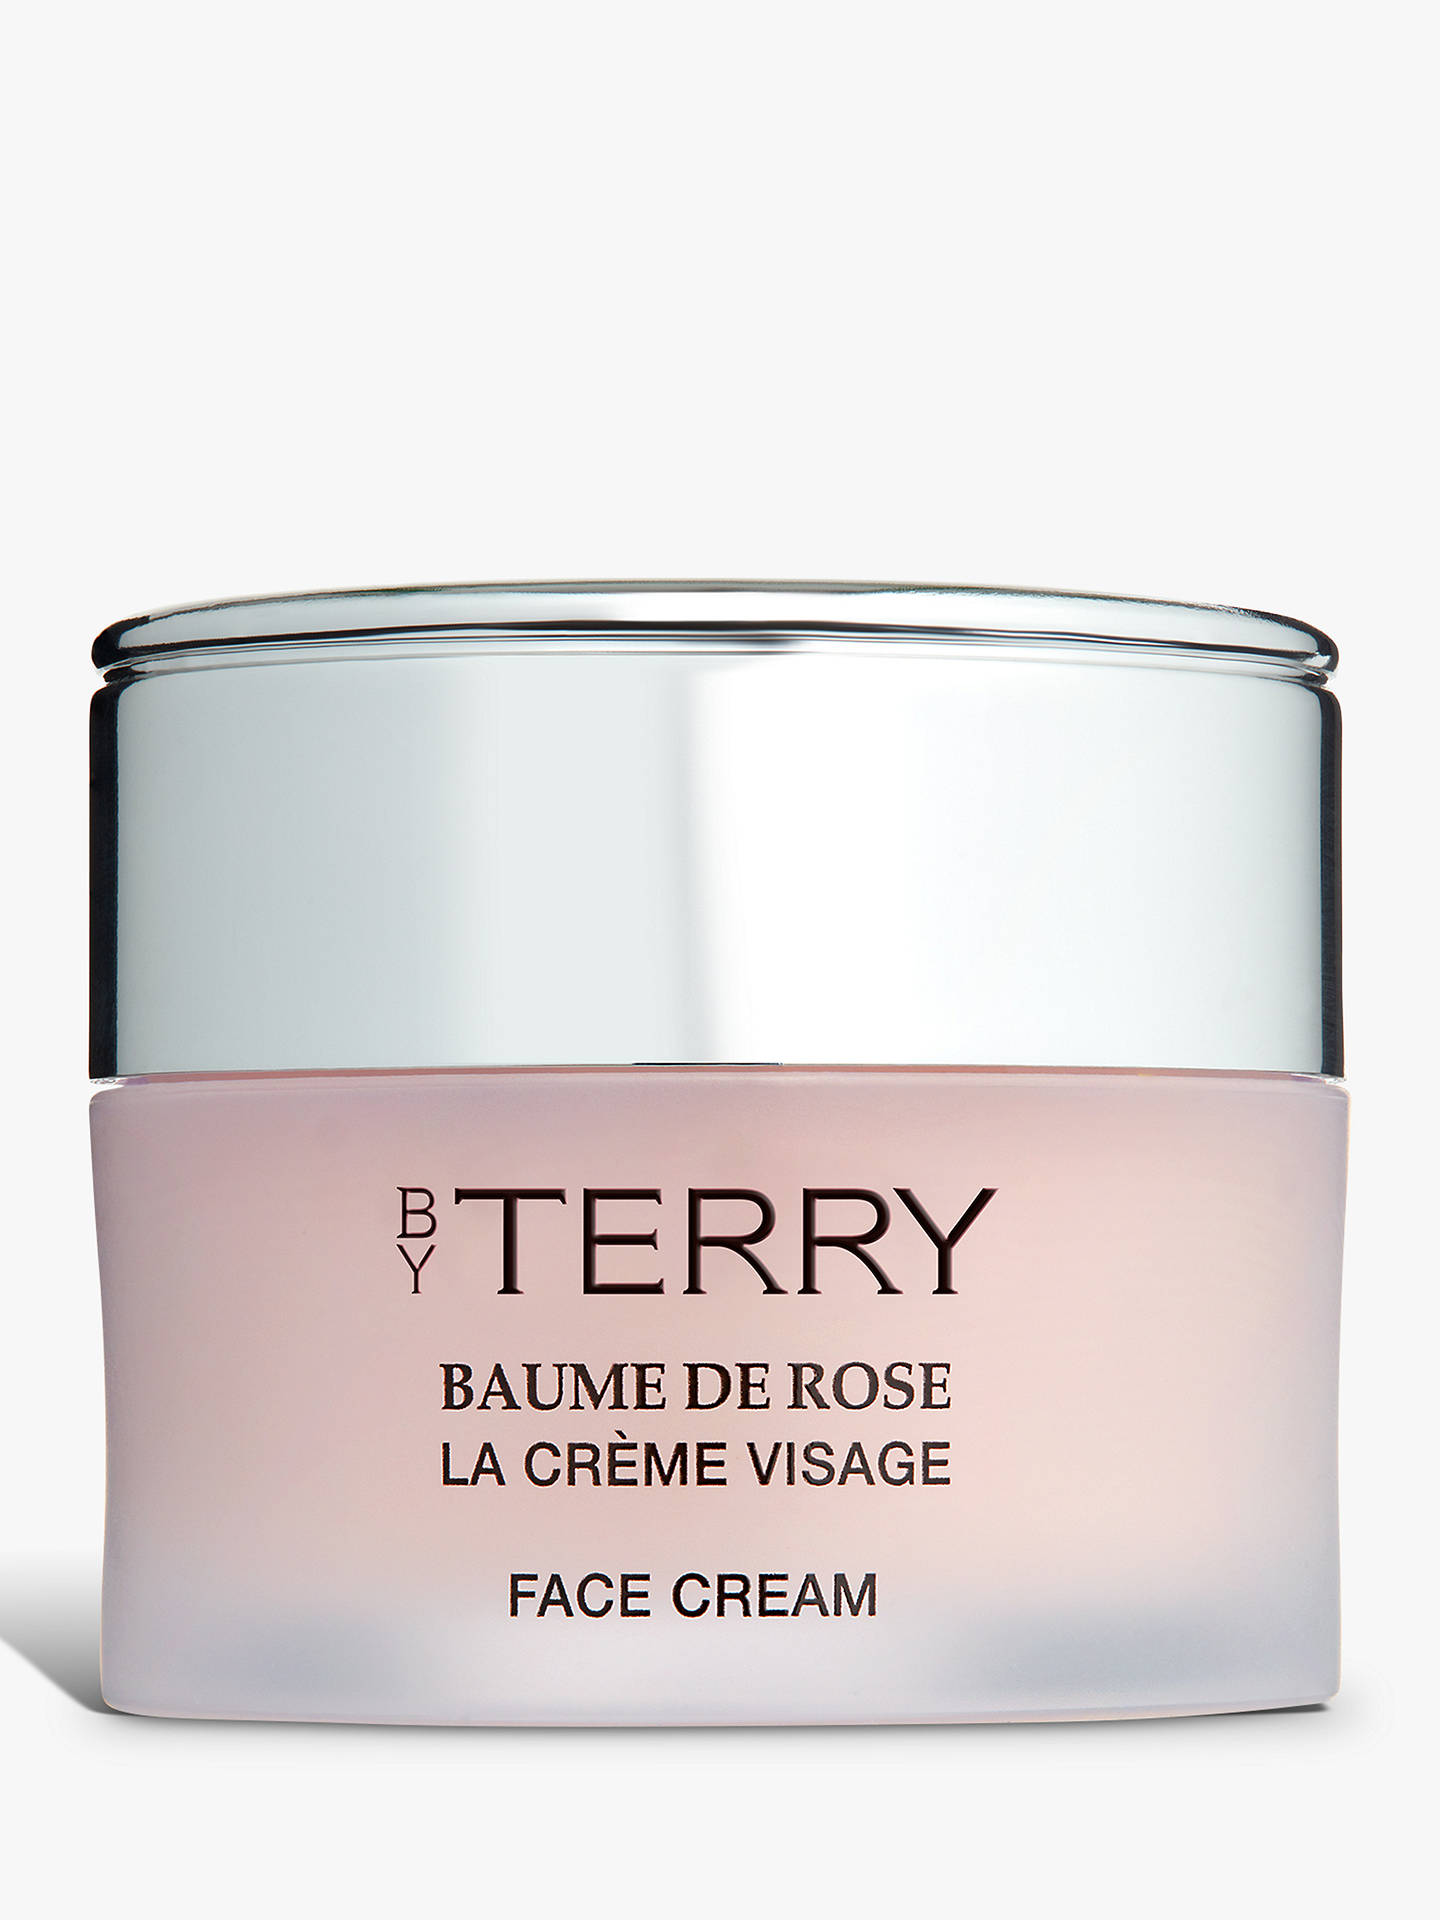 Buy BY TERRY Baume de Rose Face Cream, 50ml Online at johnlewis.com